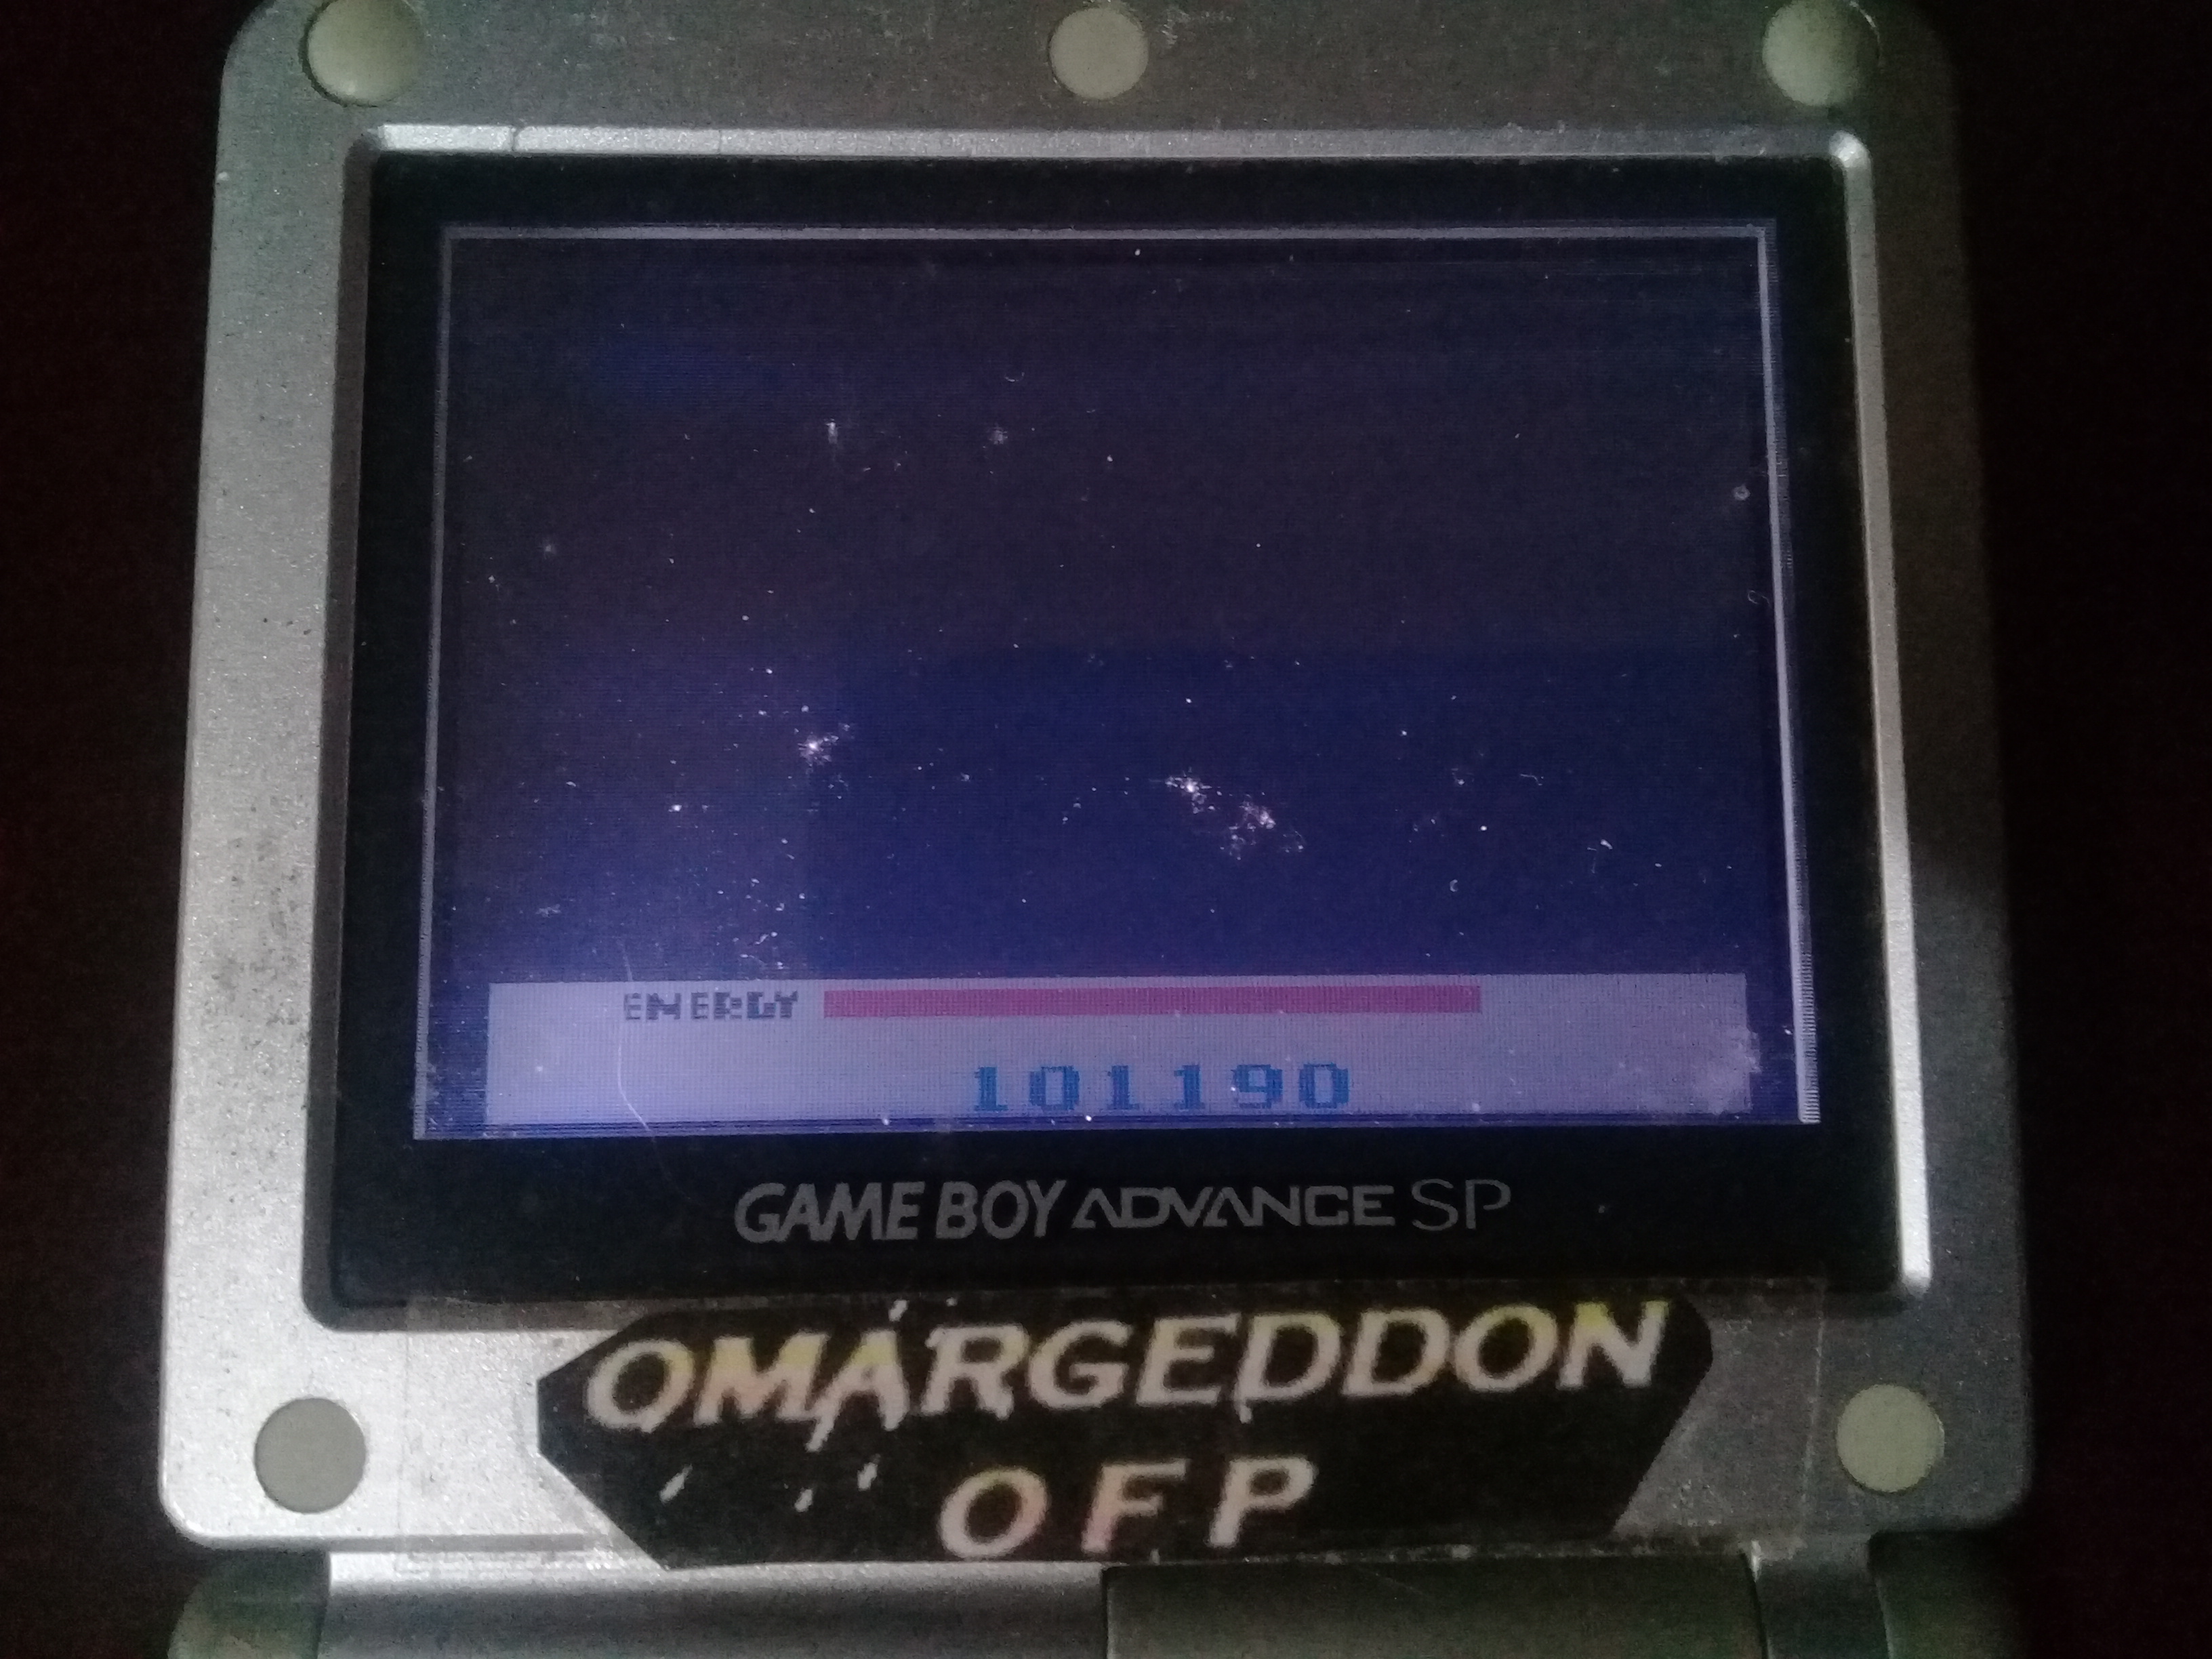 omargeddon: Activision Anthology: Megamania [Game 1B] (GBA) 101,190 points on 2020-04-03 18:21:14